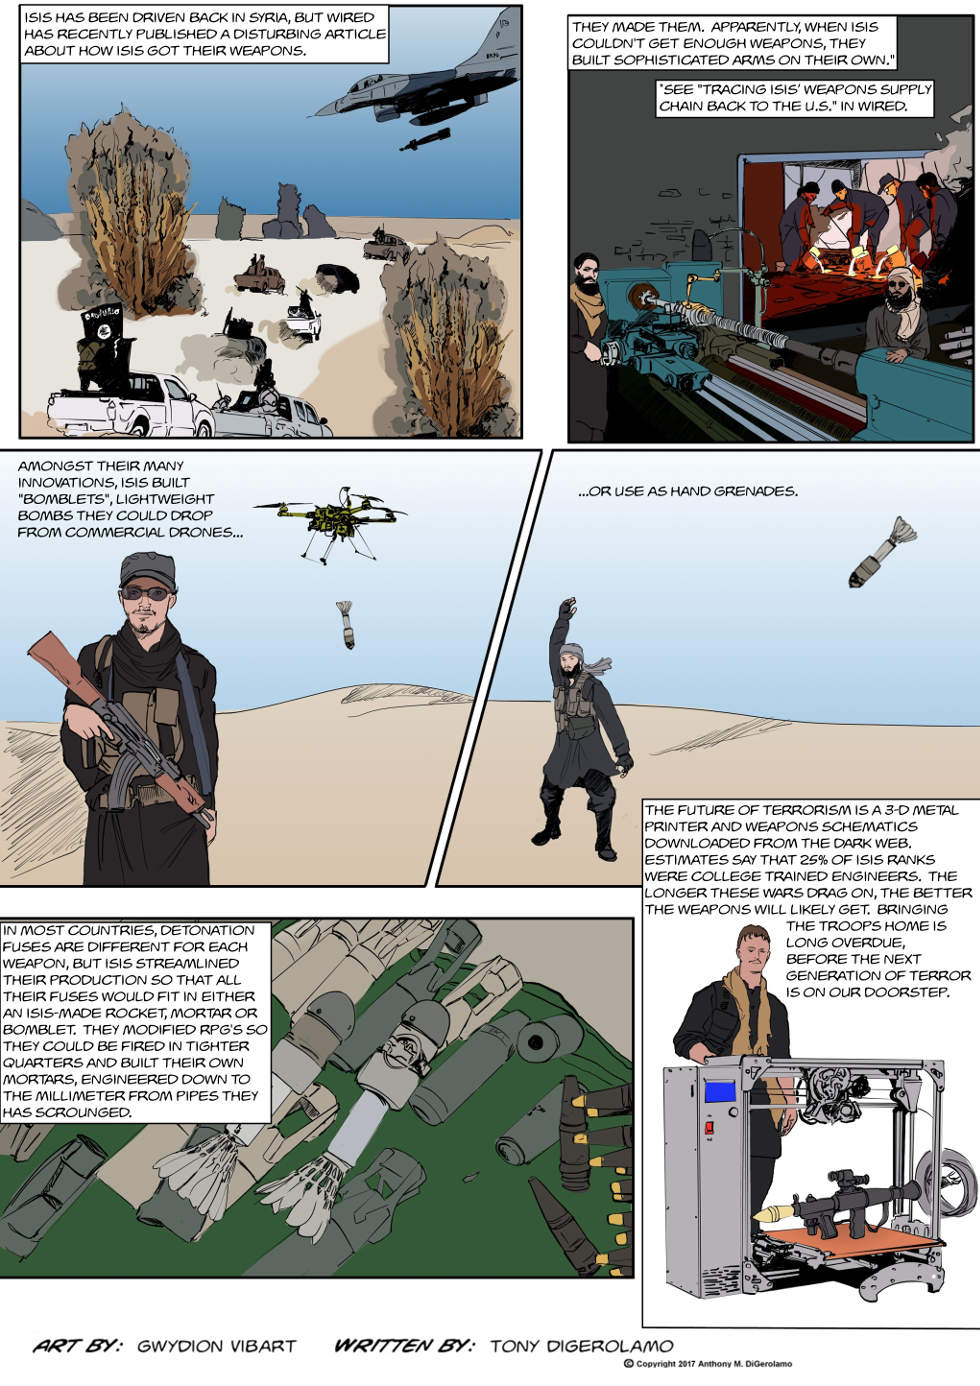 The Antiwar Comic:  ISIS, The Next Generation